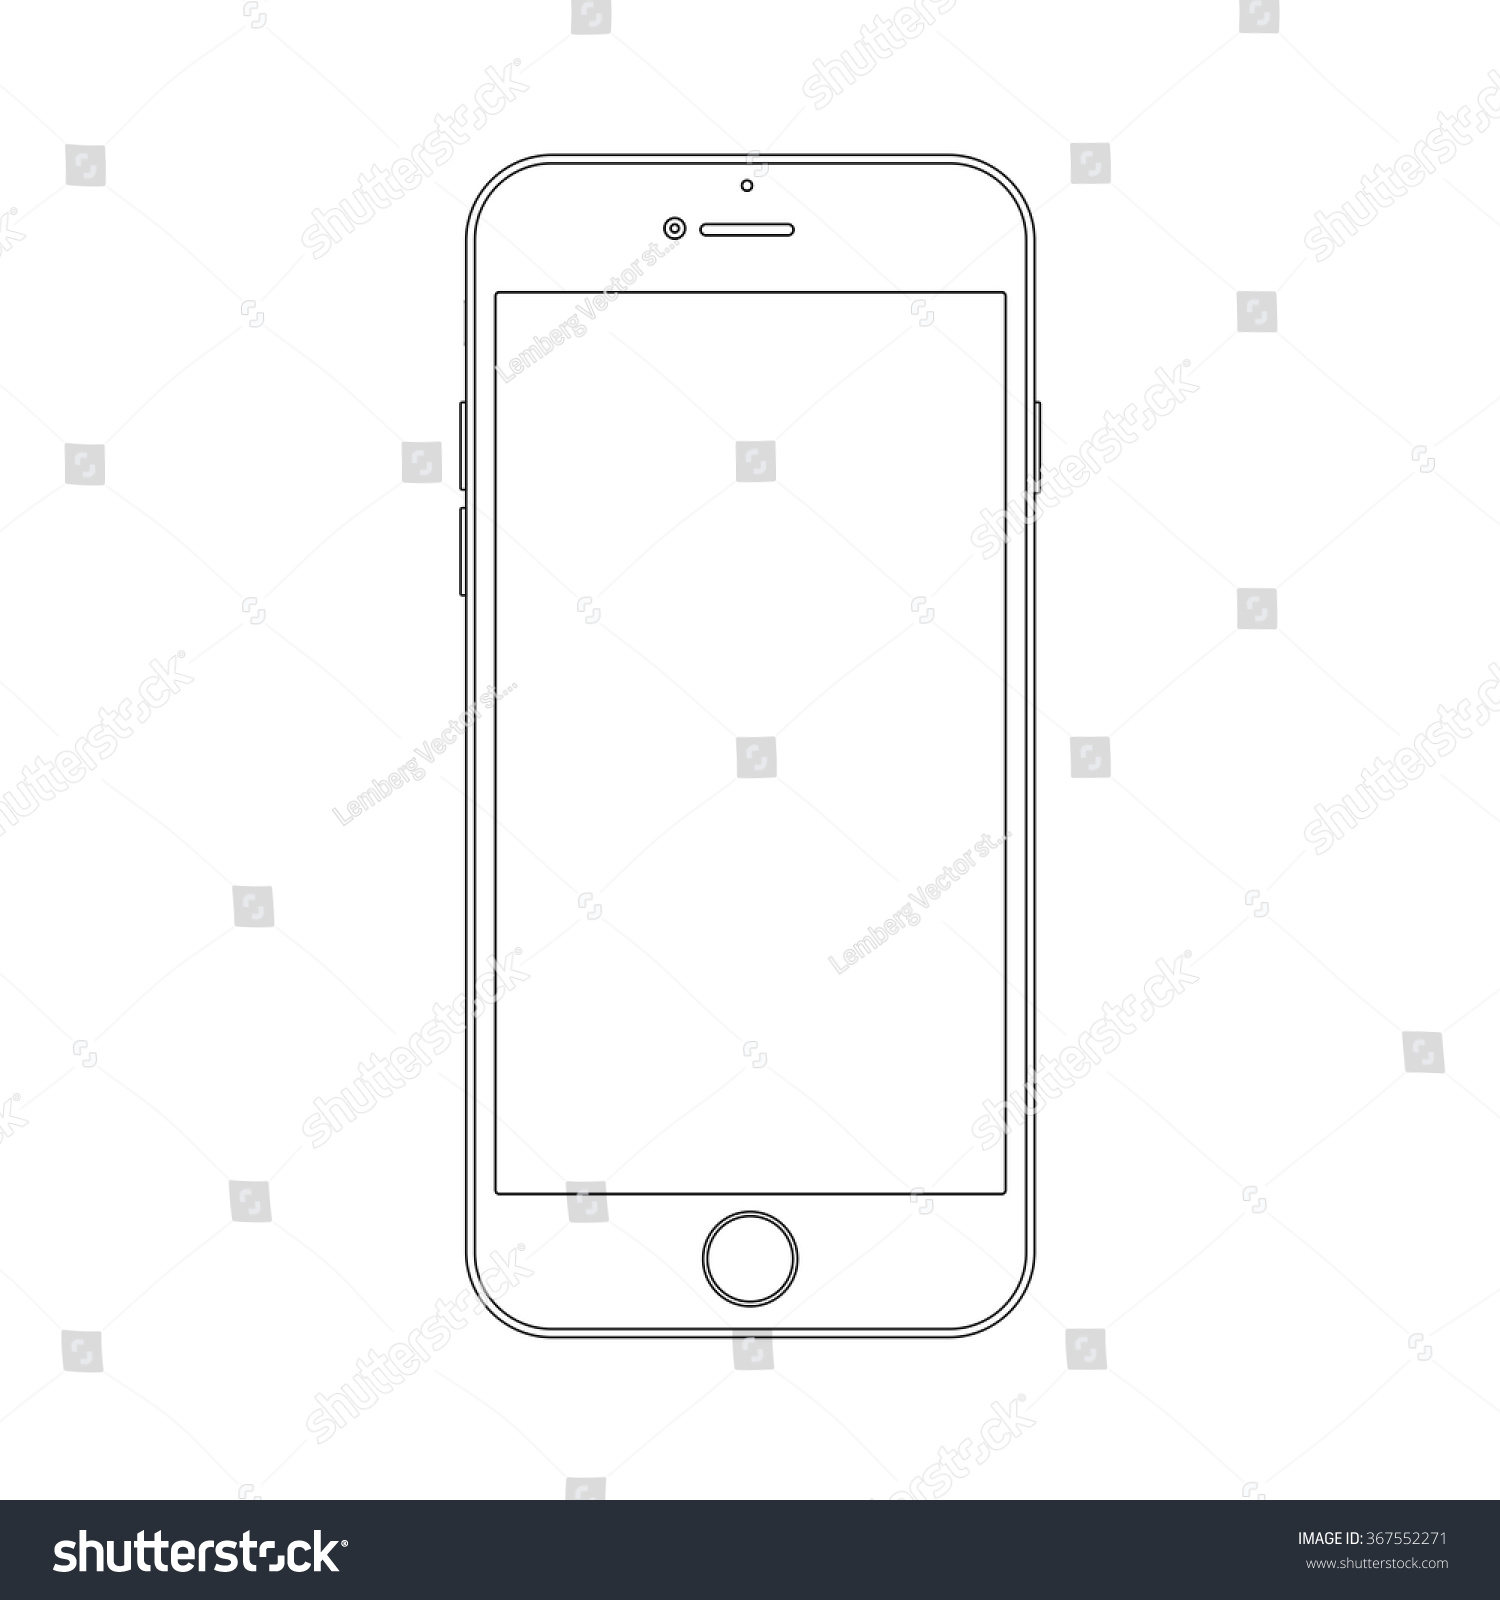 Vector Drawing Lines App : Outline drawing modern smartphone elegant thin stock